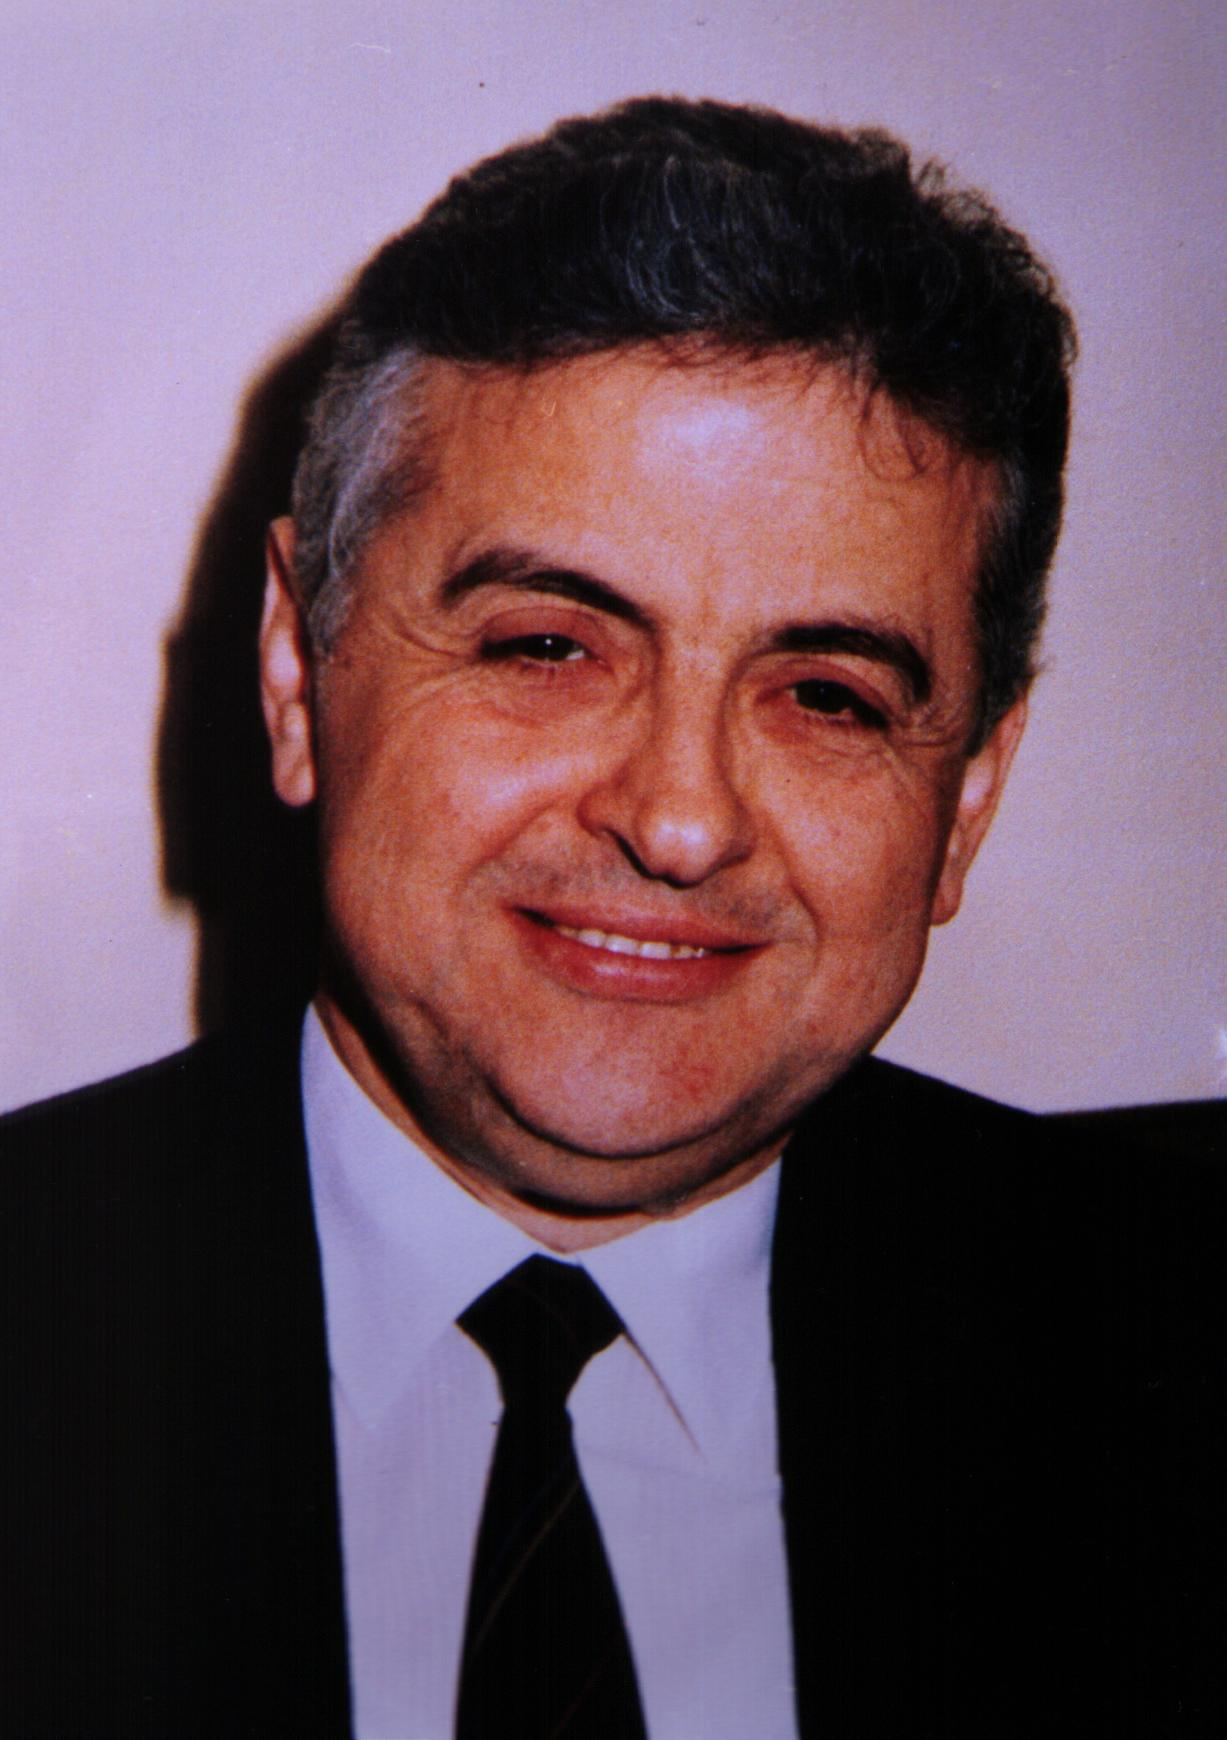 1988officialpic.jpg